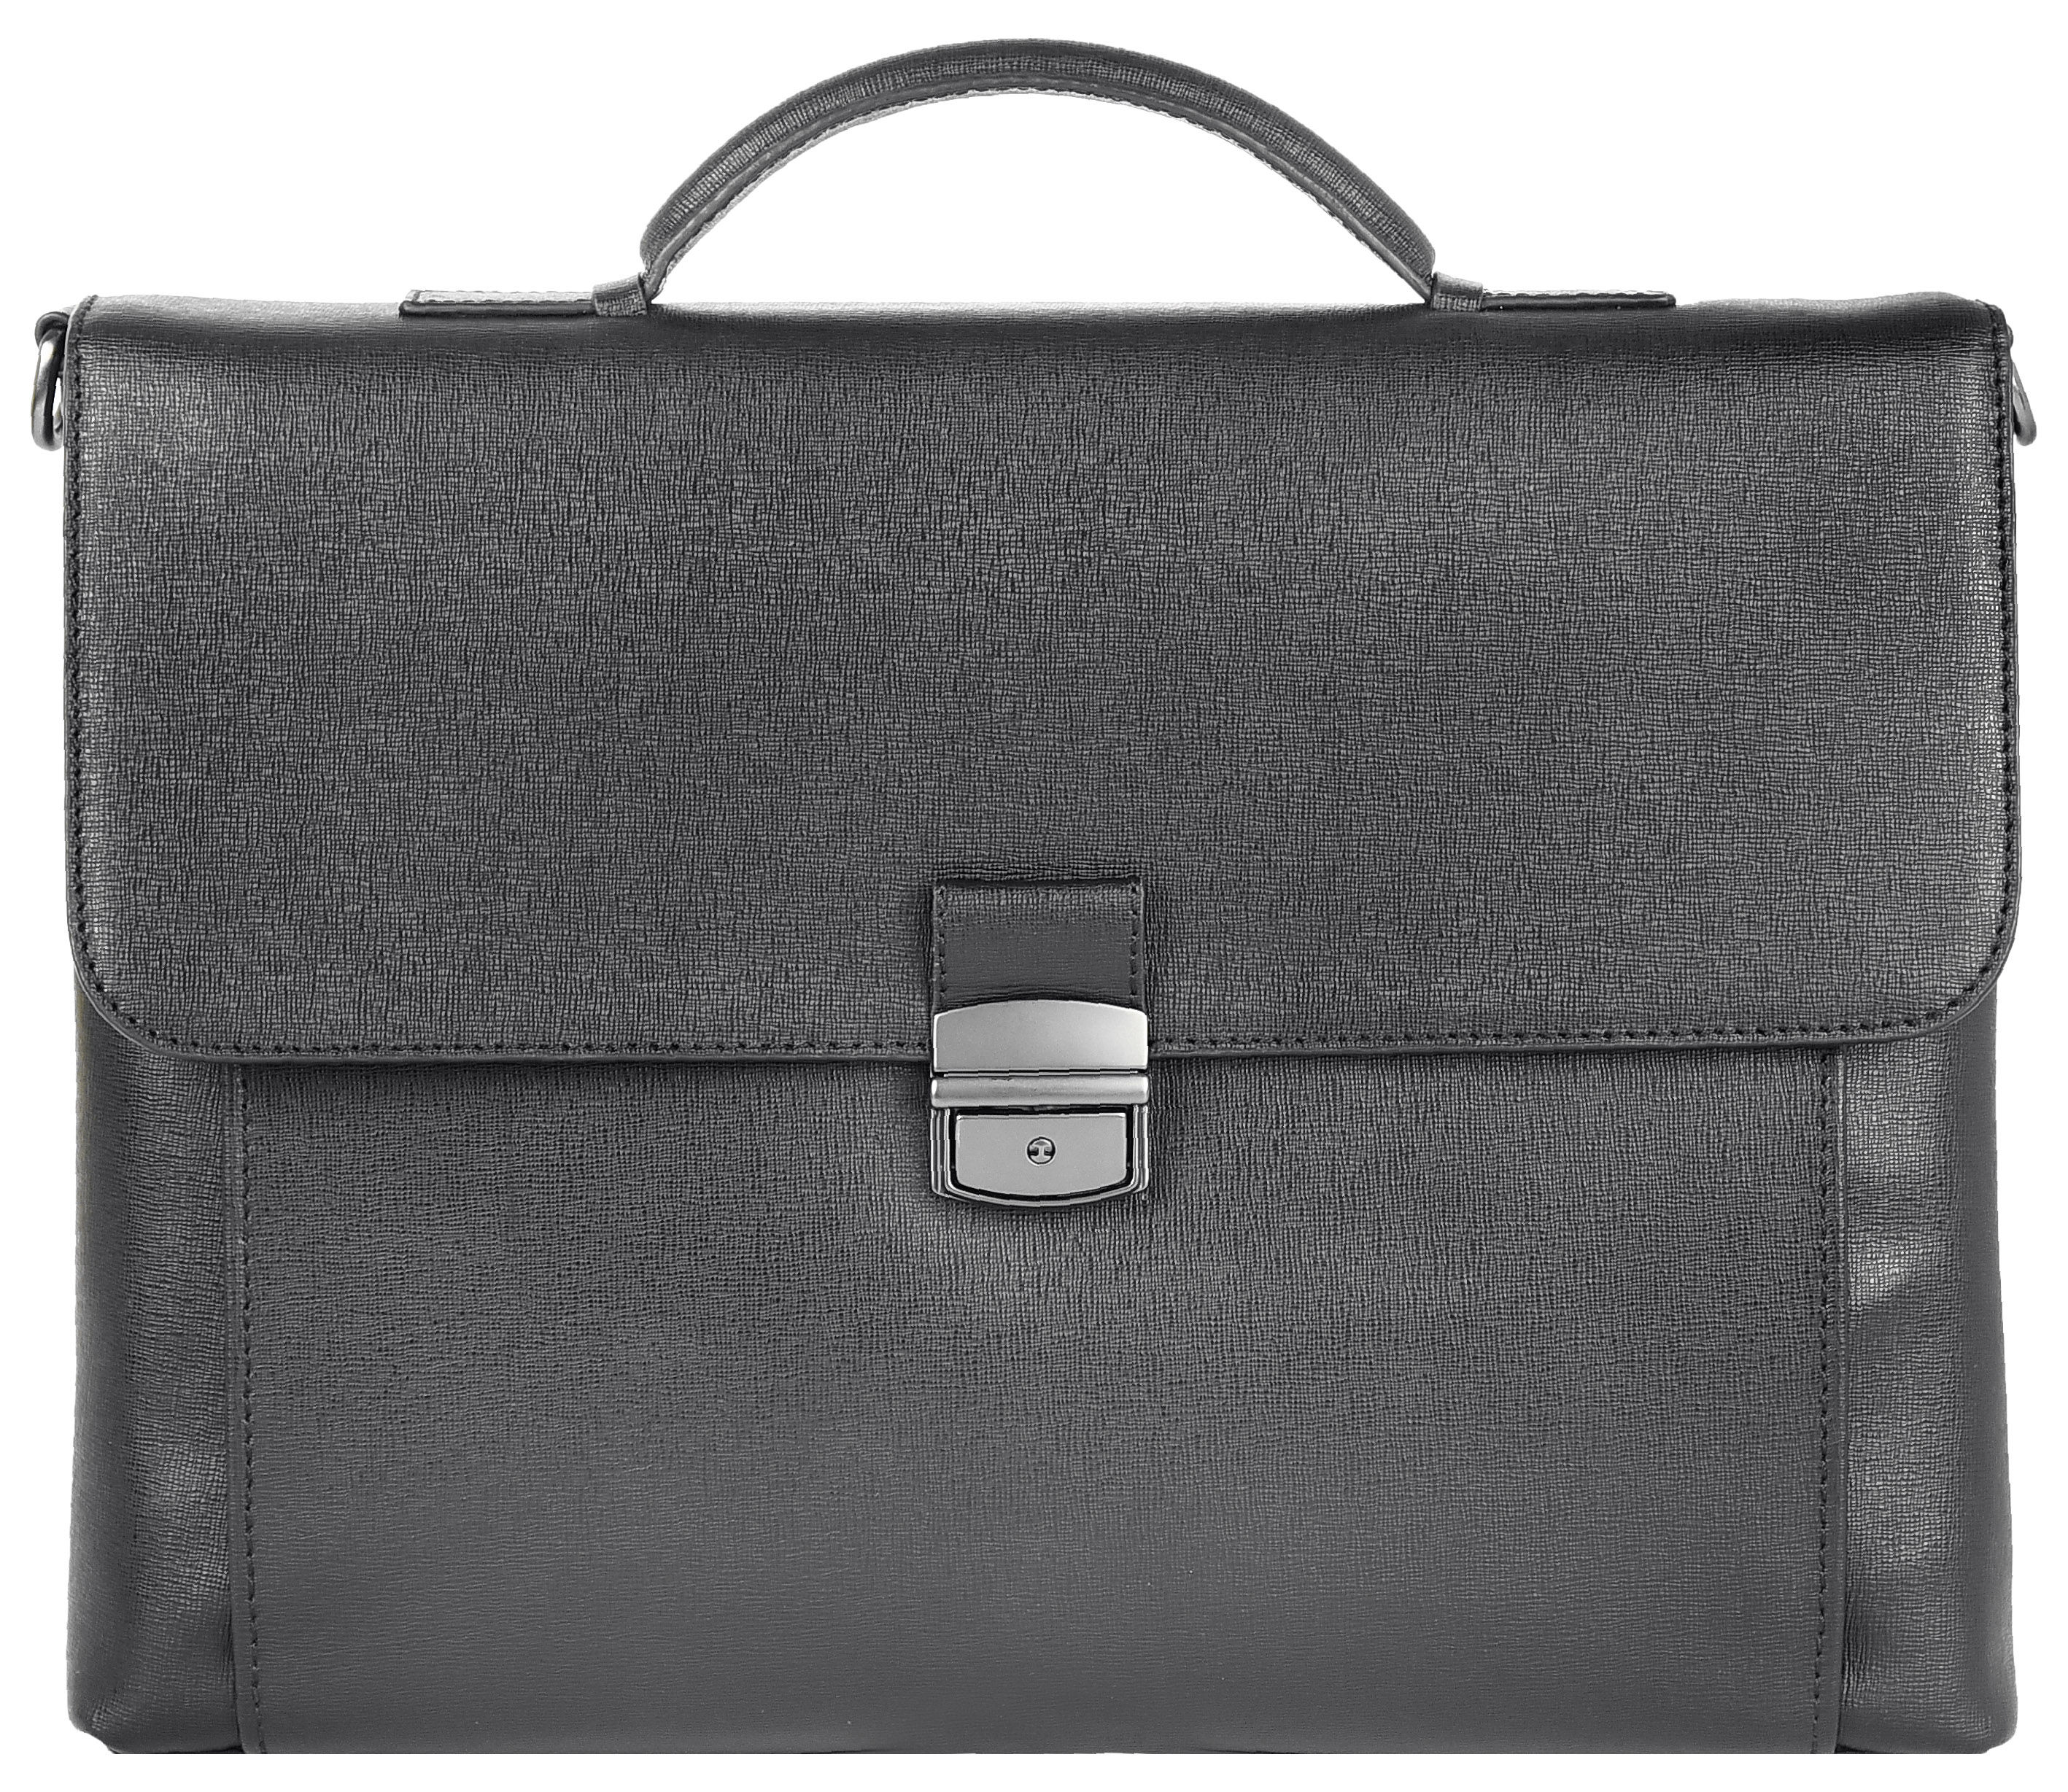 Eske Jules Laptop Bag - Black